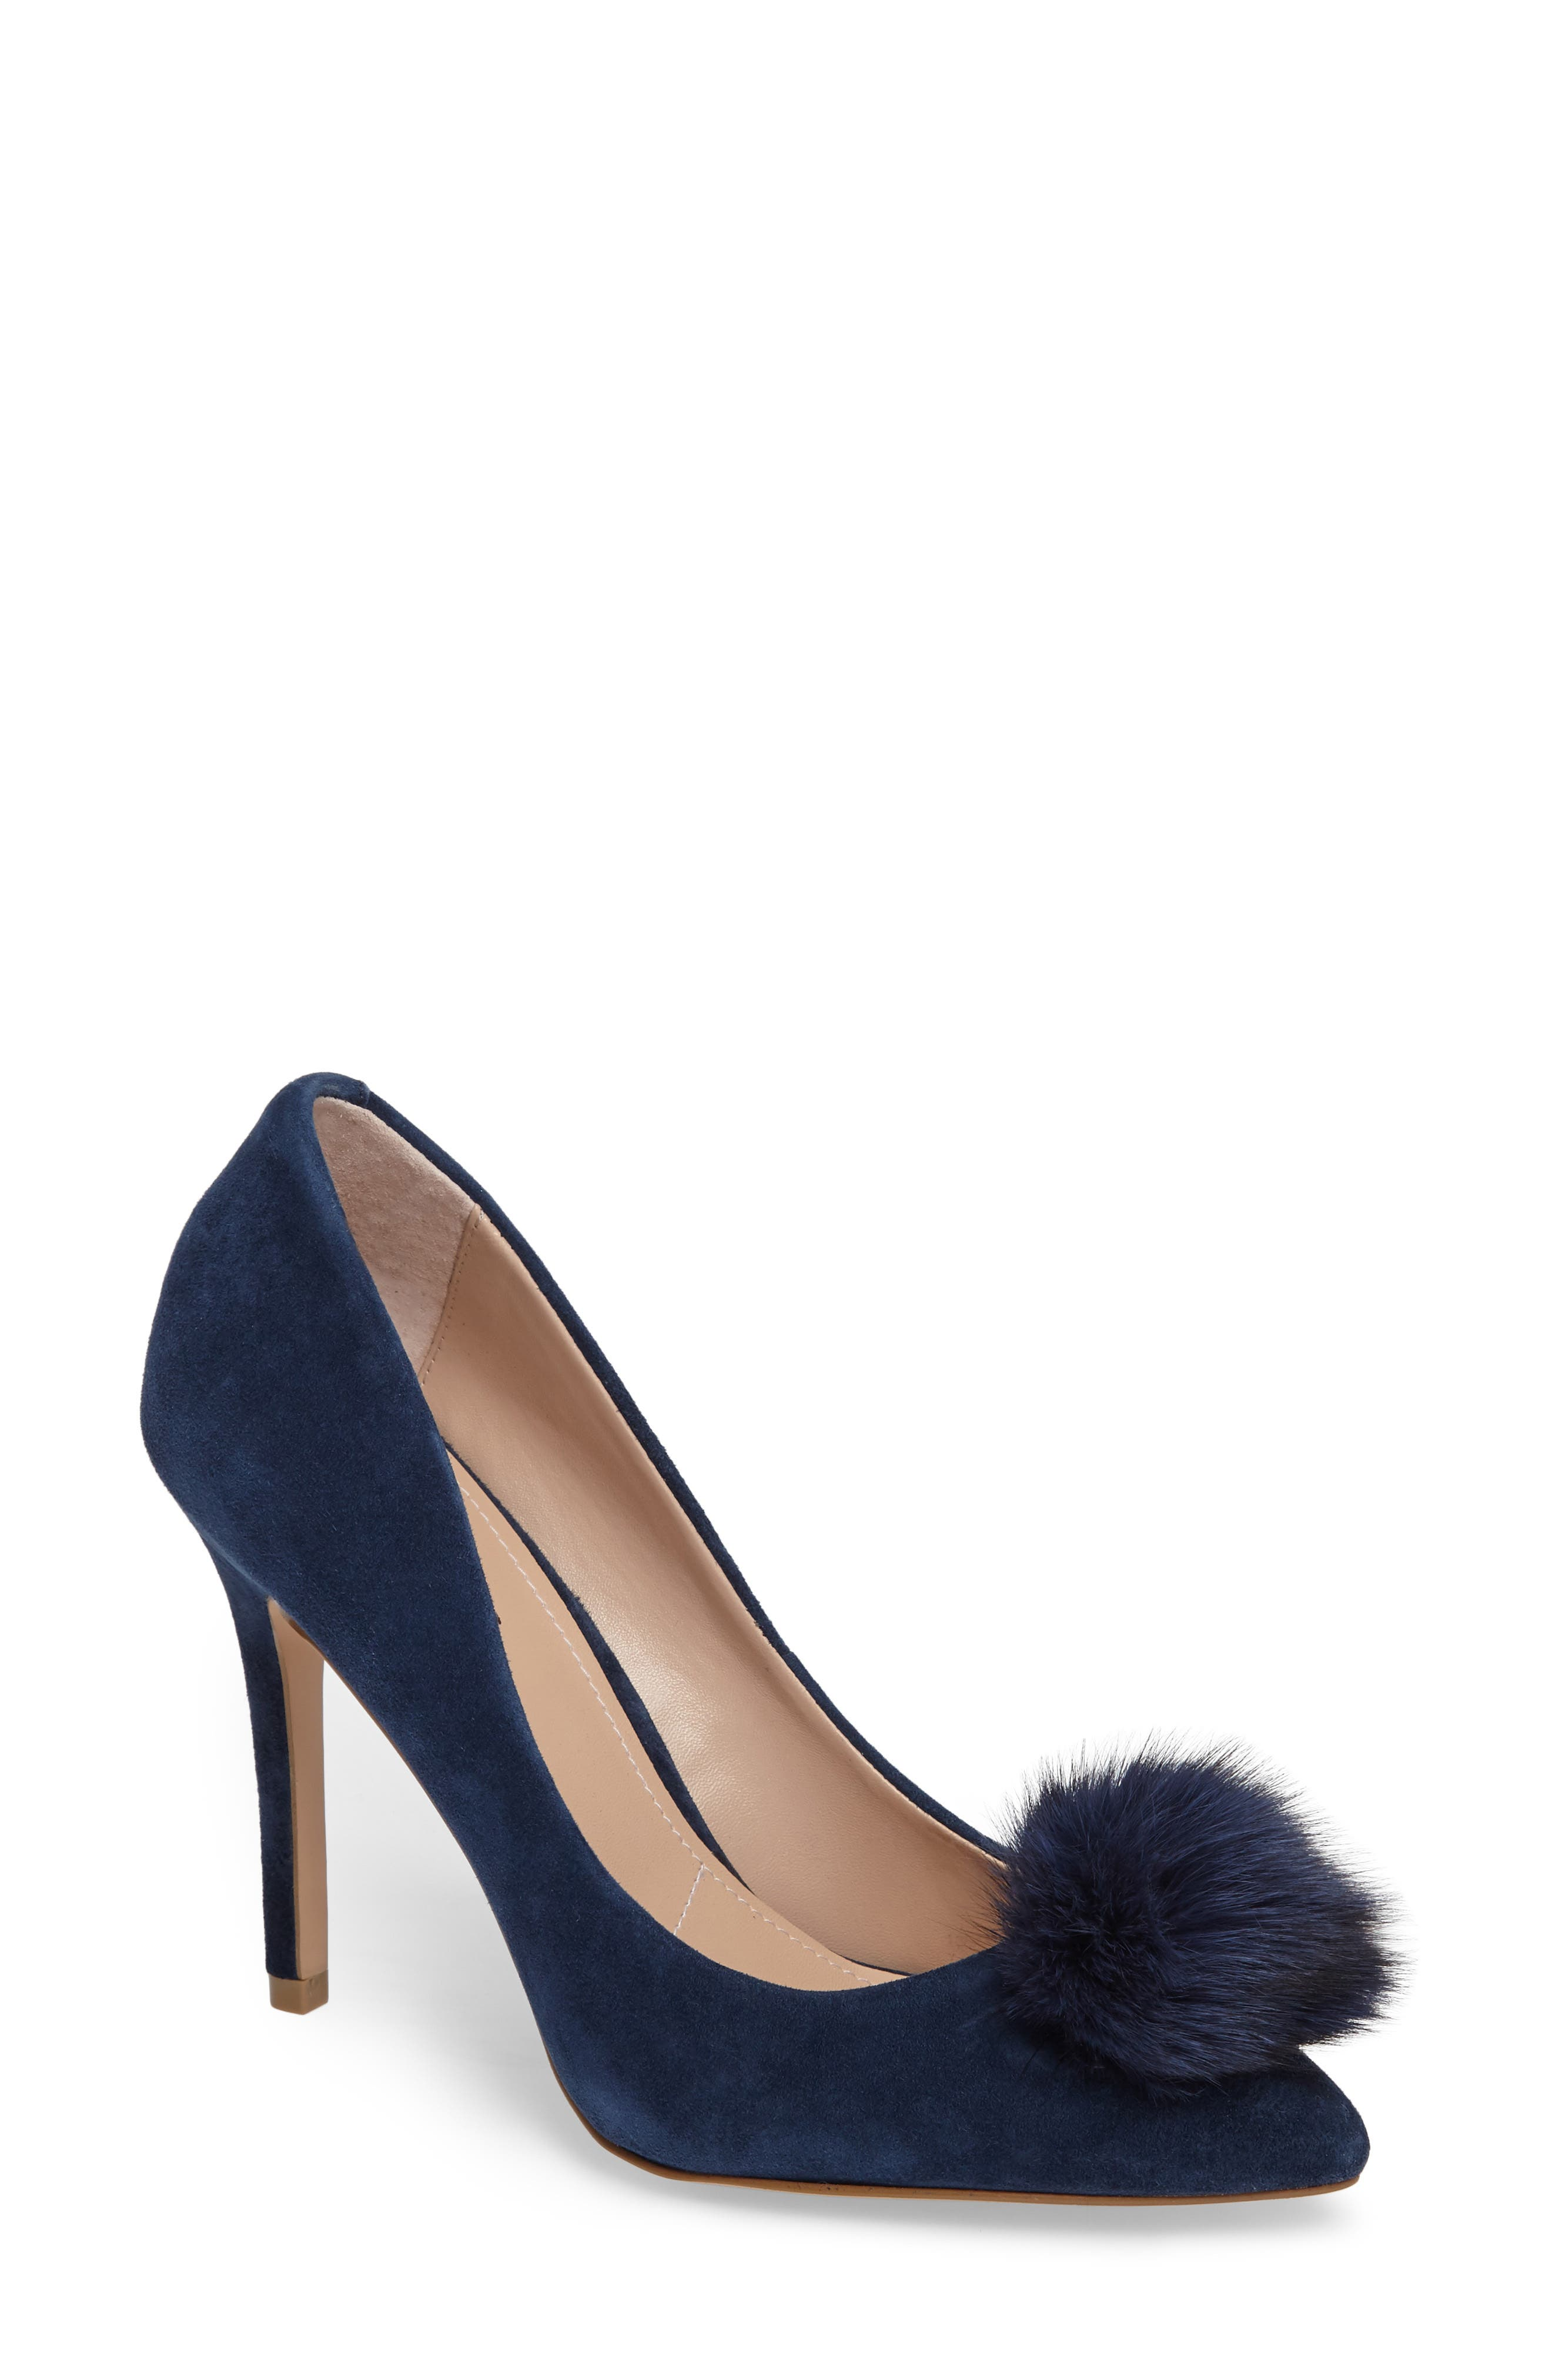 Pixie Pump with Genuine Fox Fur Pom,                             Main thumbnail 1, color,                             Midnight Suede